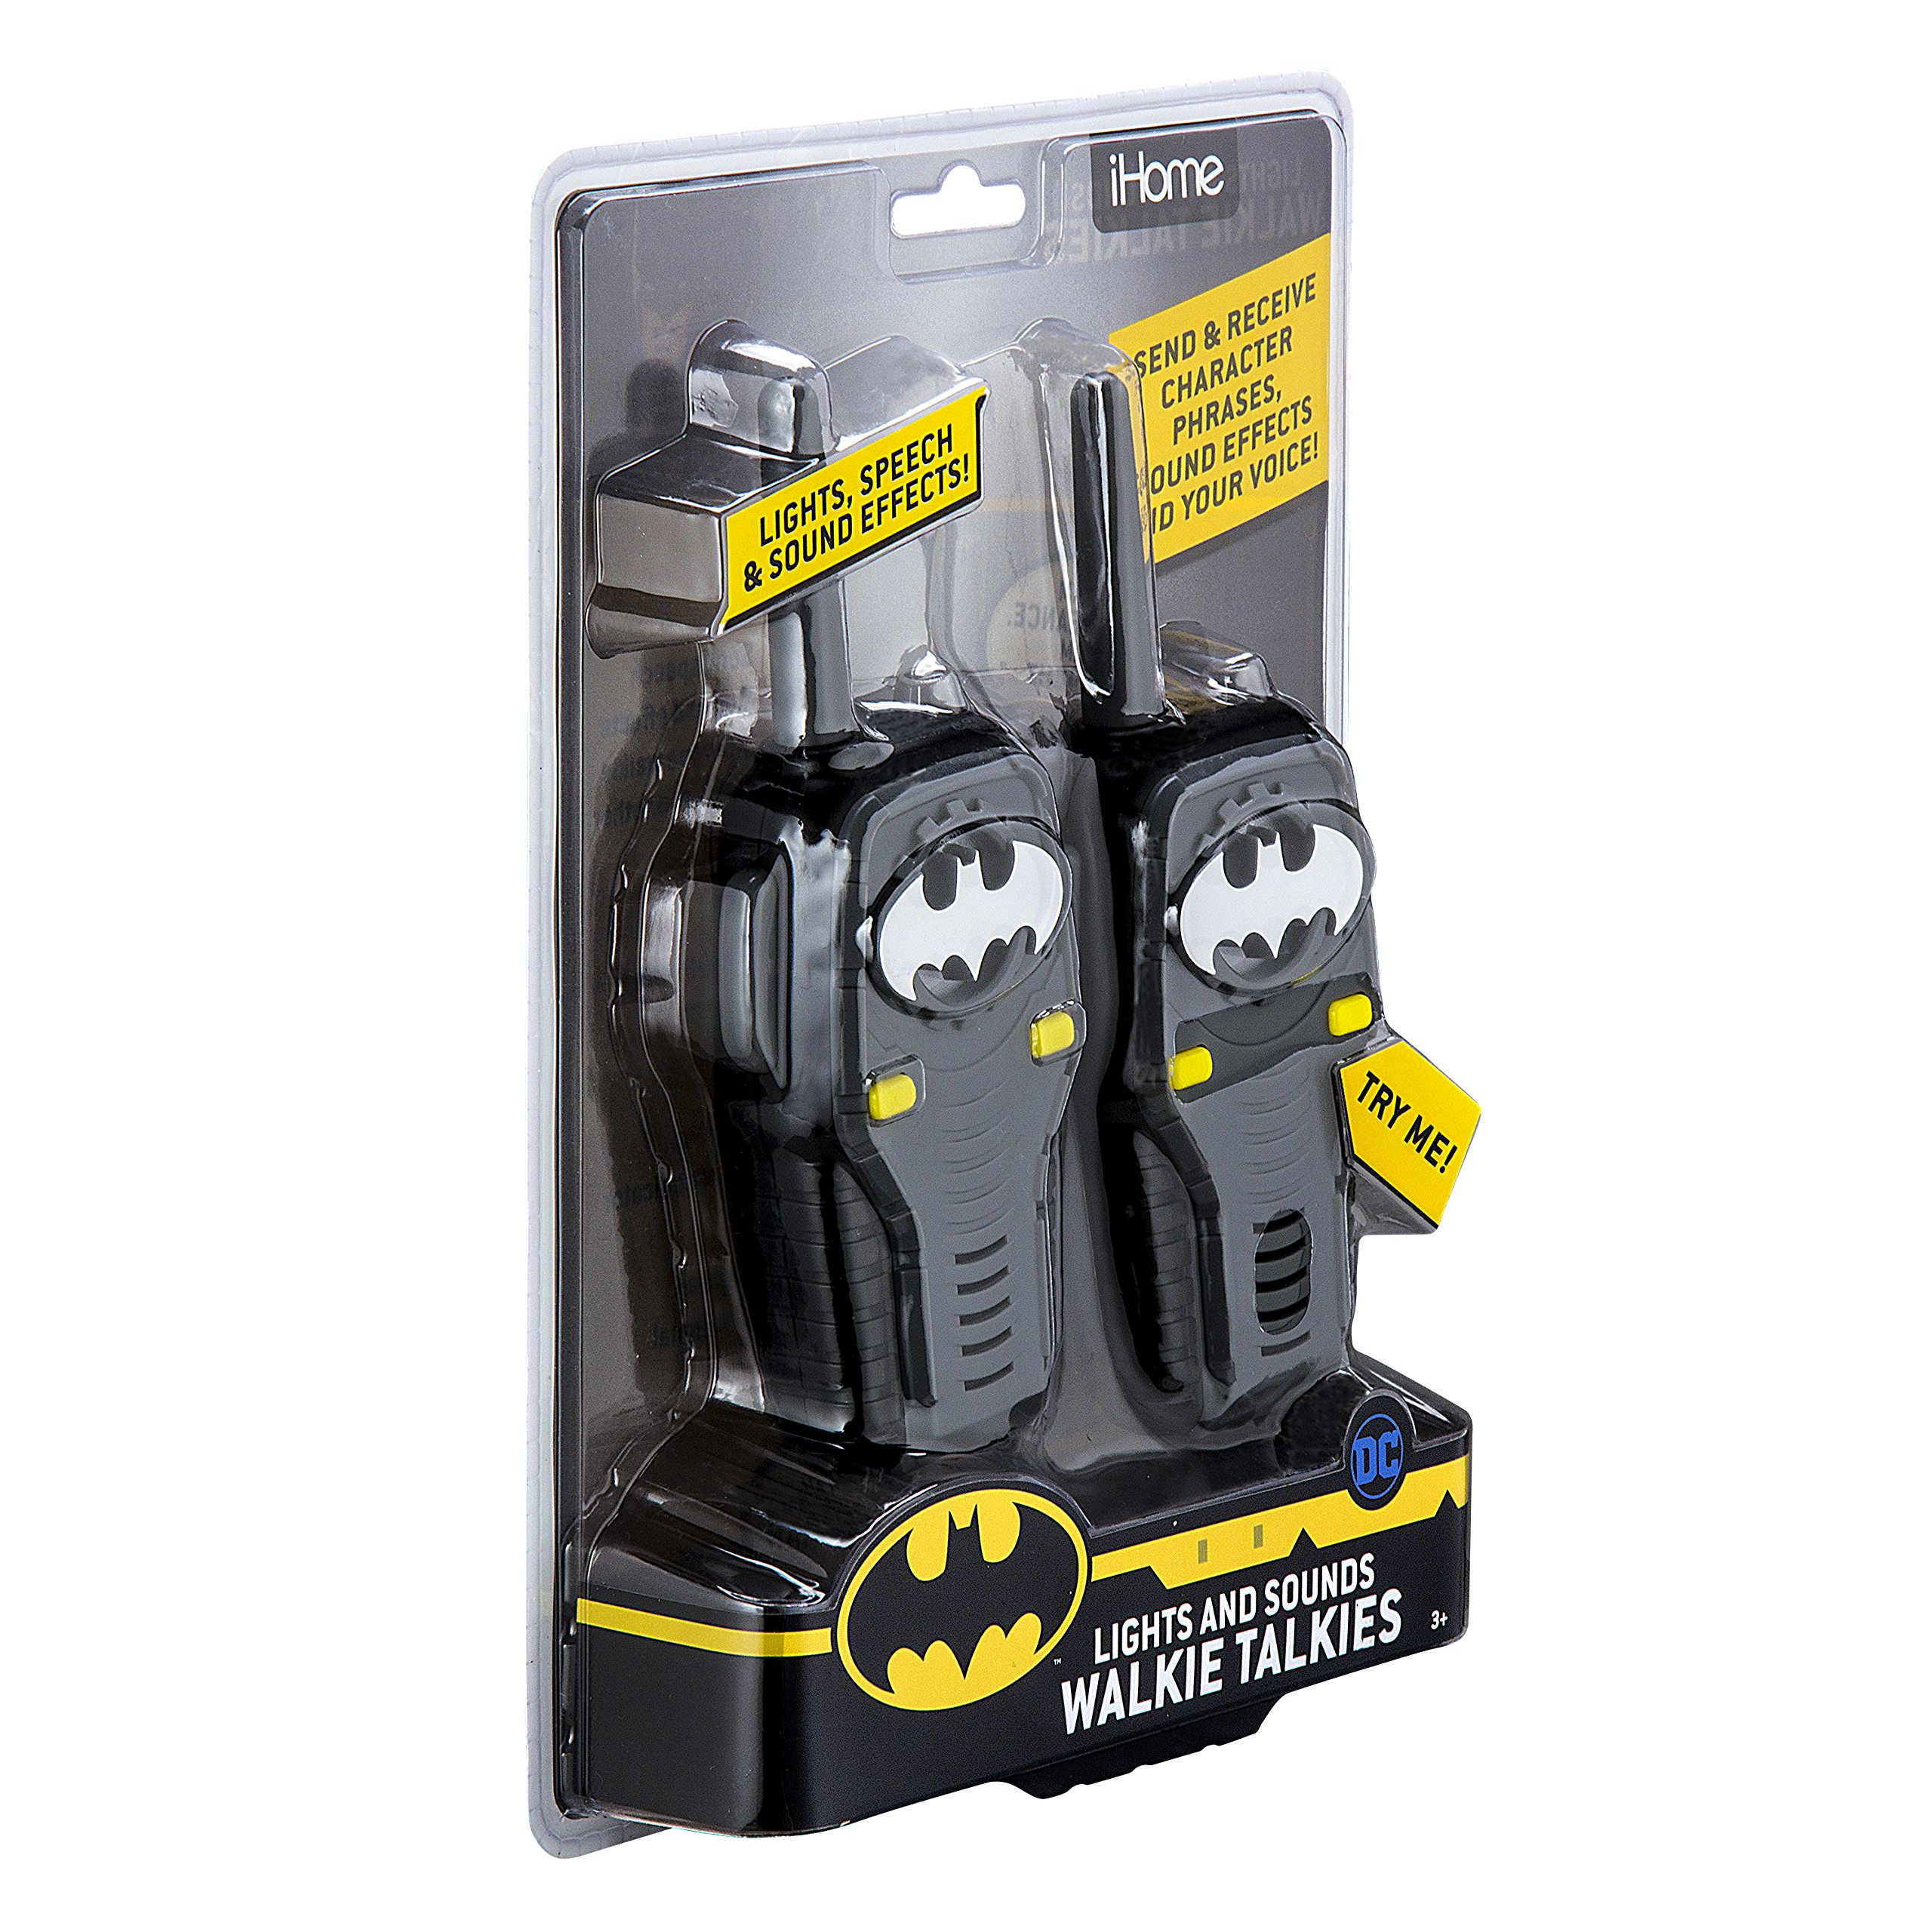 Batman FRS Walkie Talkies for Kids with Lights and Sounds Kid Friendly Easy to Use by eKids (Image #7)